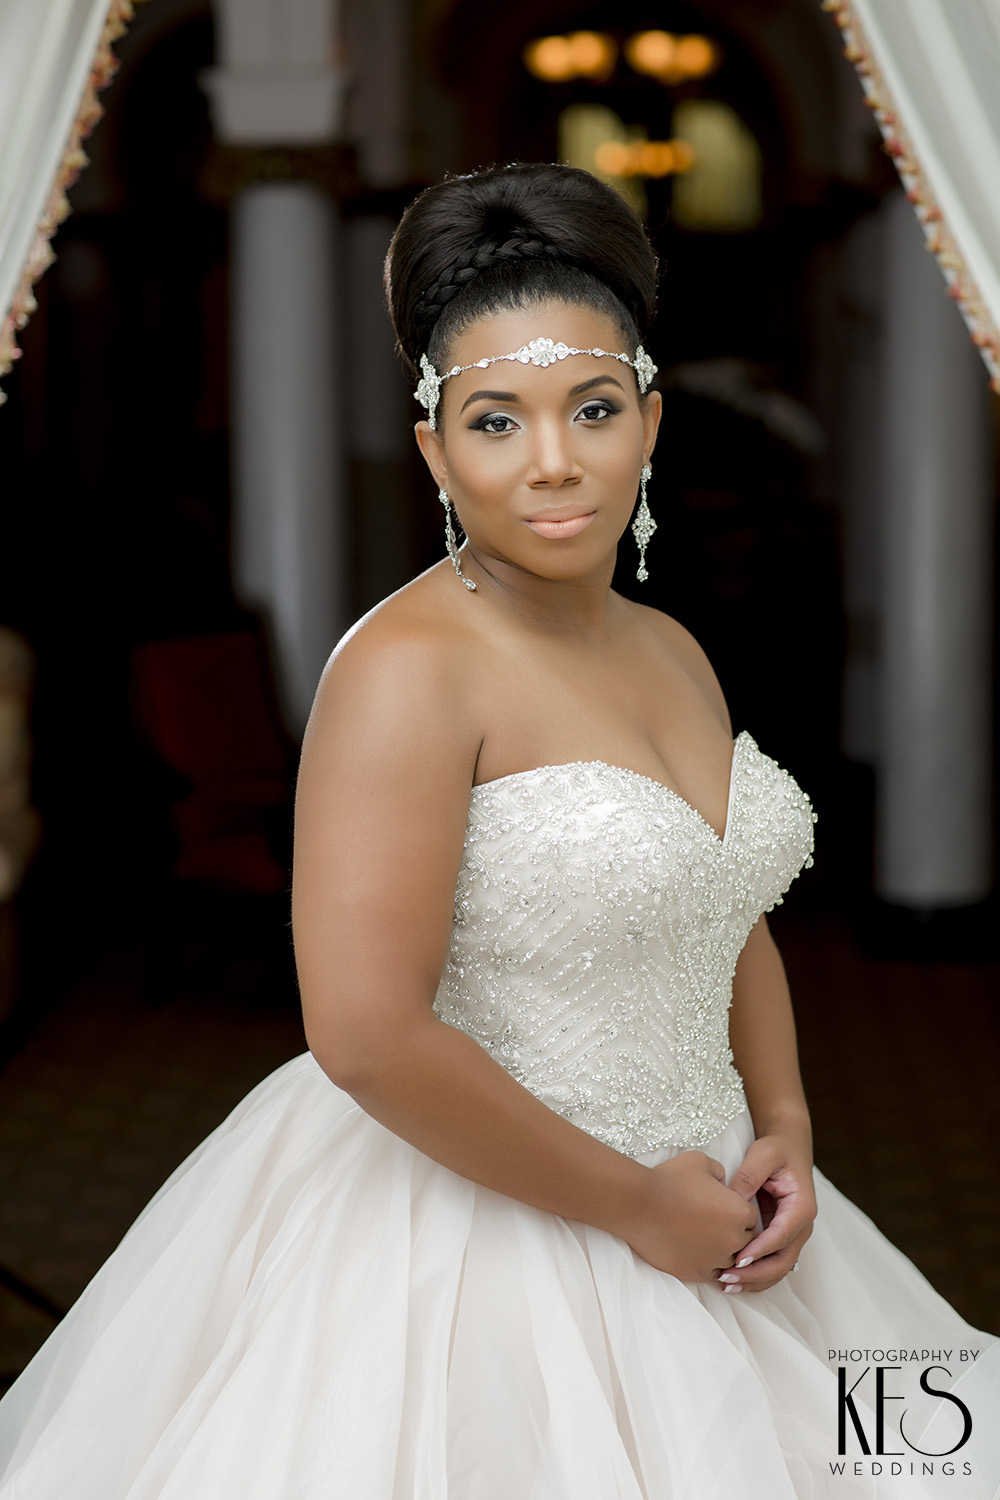 KES Weddings Bridal Photos Capital Hotel17.JPG